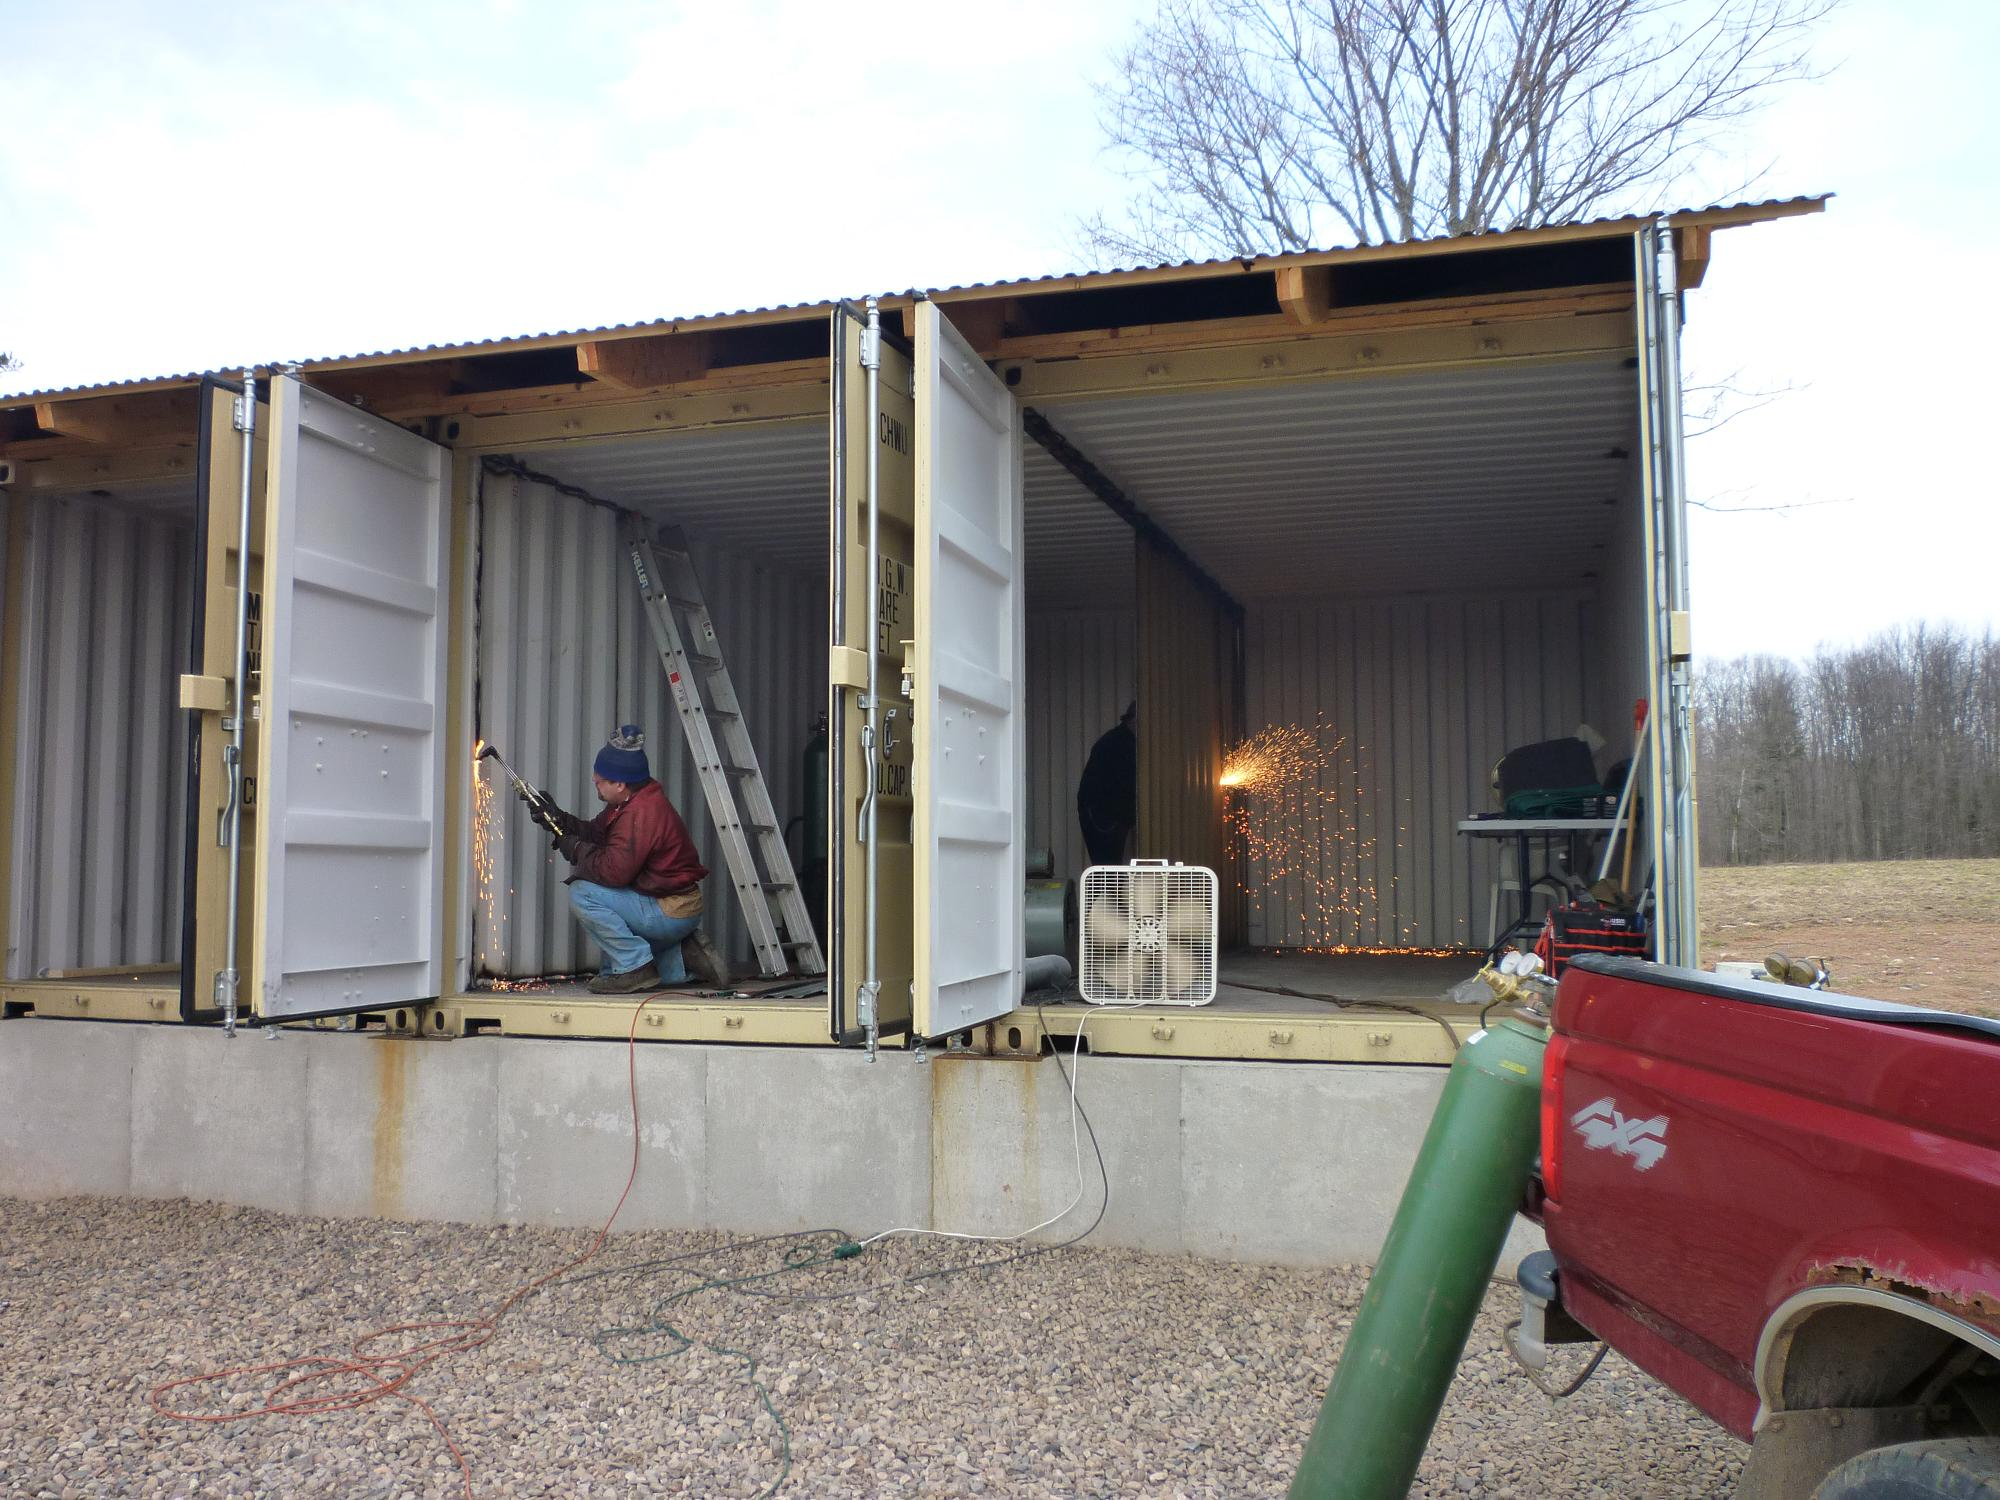 Removing structural components of a shipping container can quickly create a  dangerous structure to be in and around.